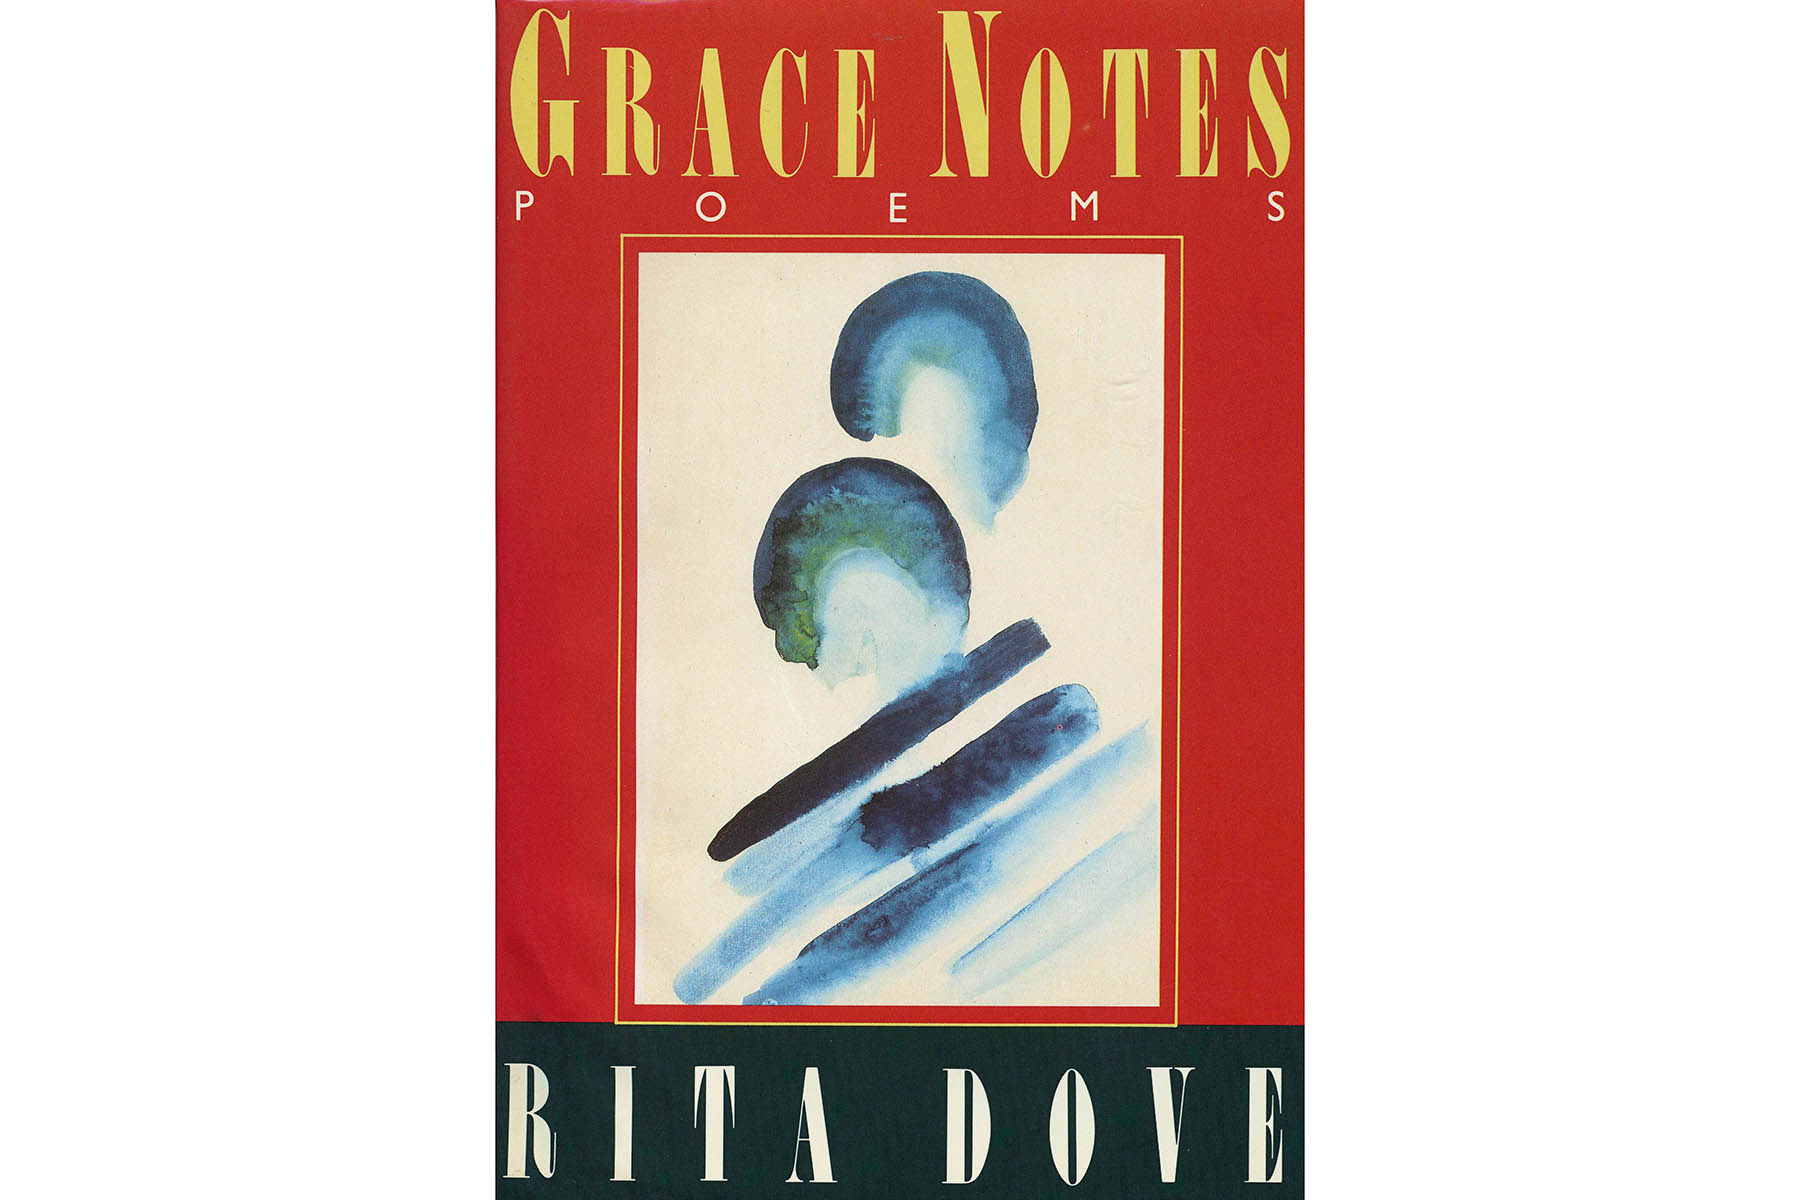 Grace Notes, by Rita Dove